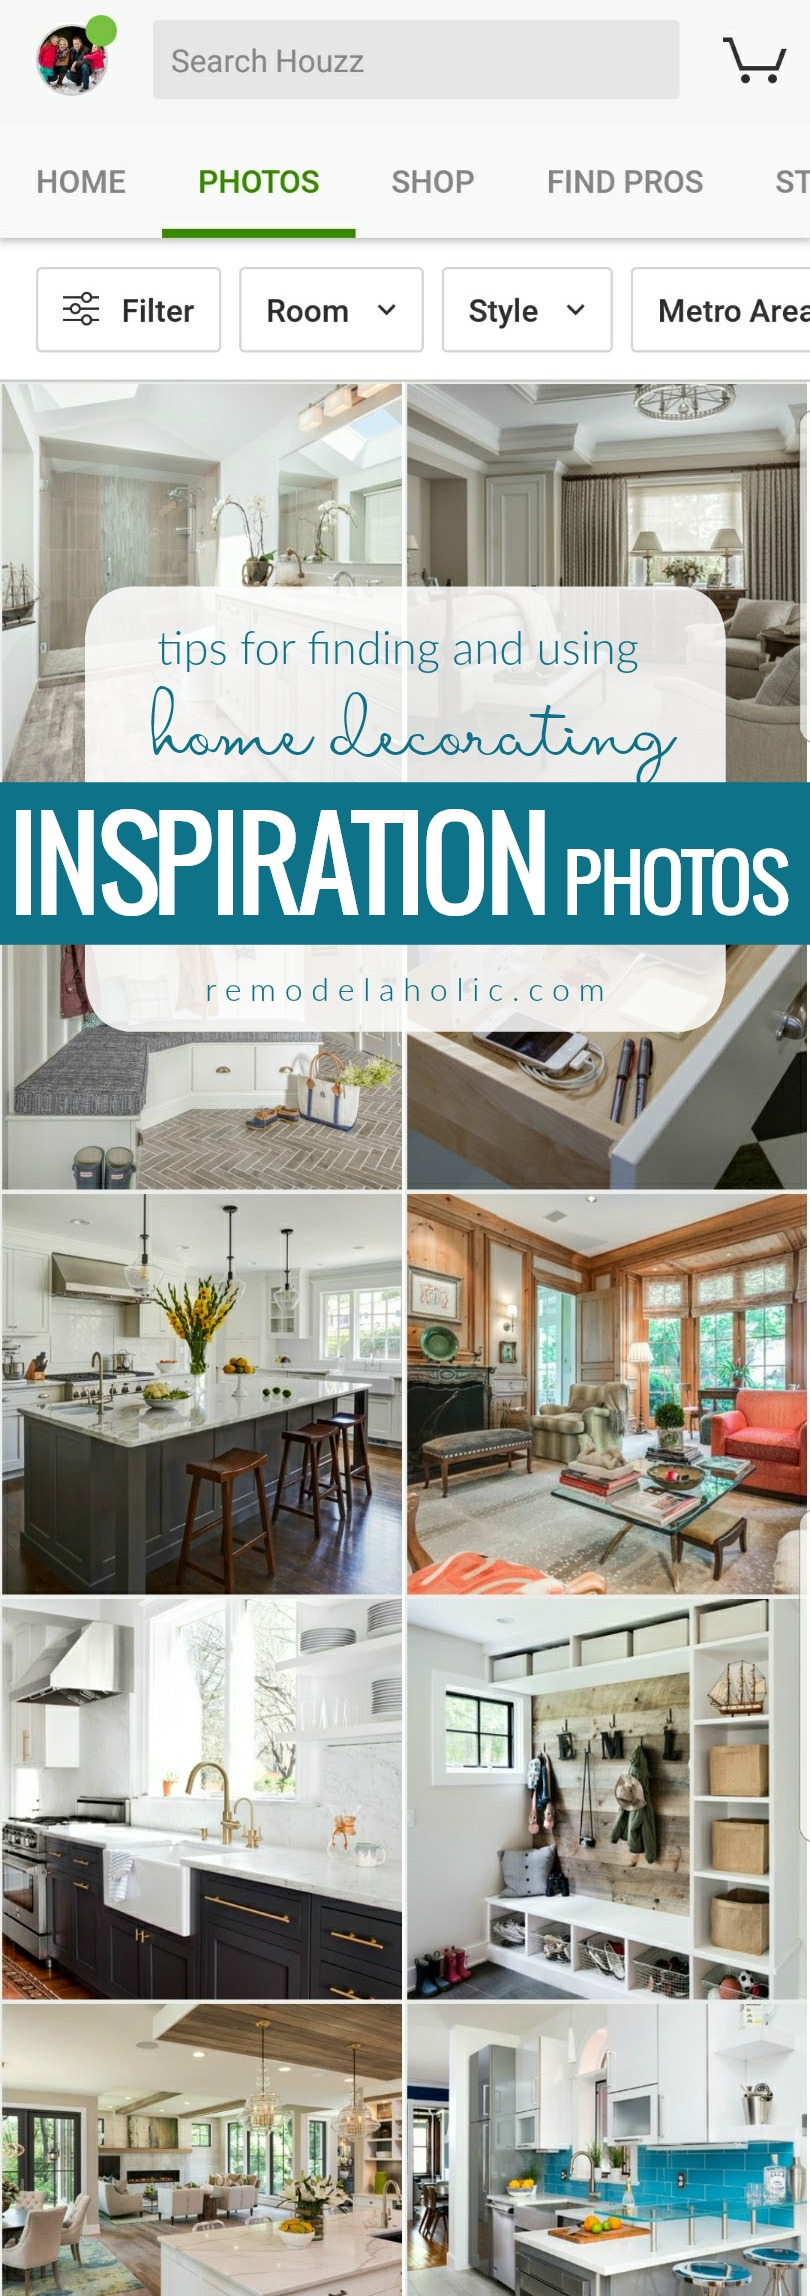 Homedecorating remodelaholic | finding (and using) beautiful home decorating